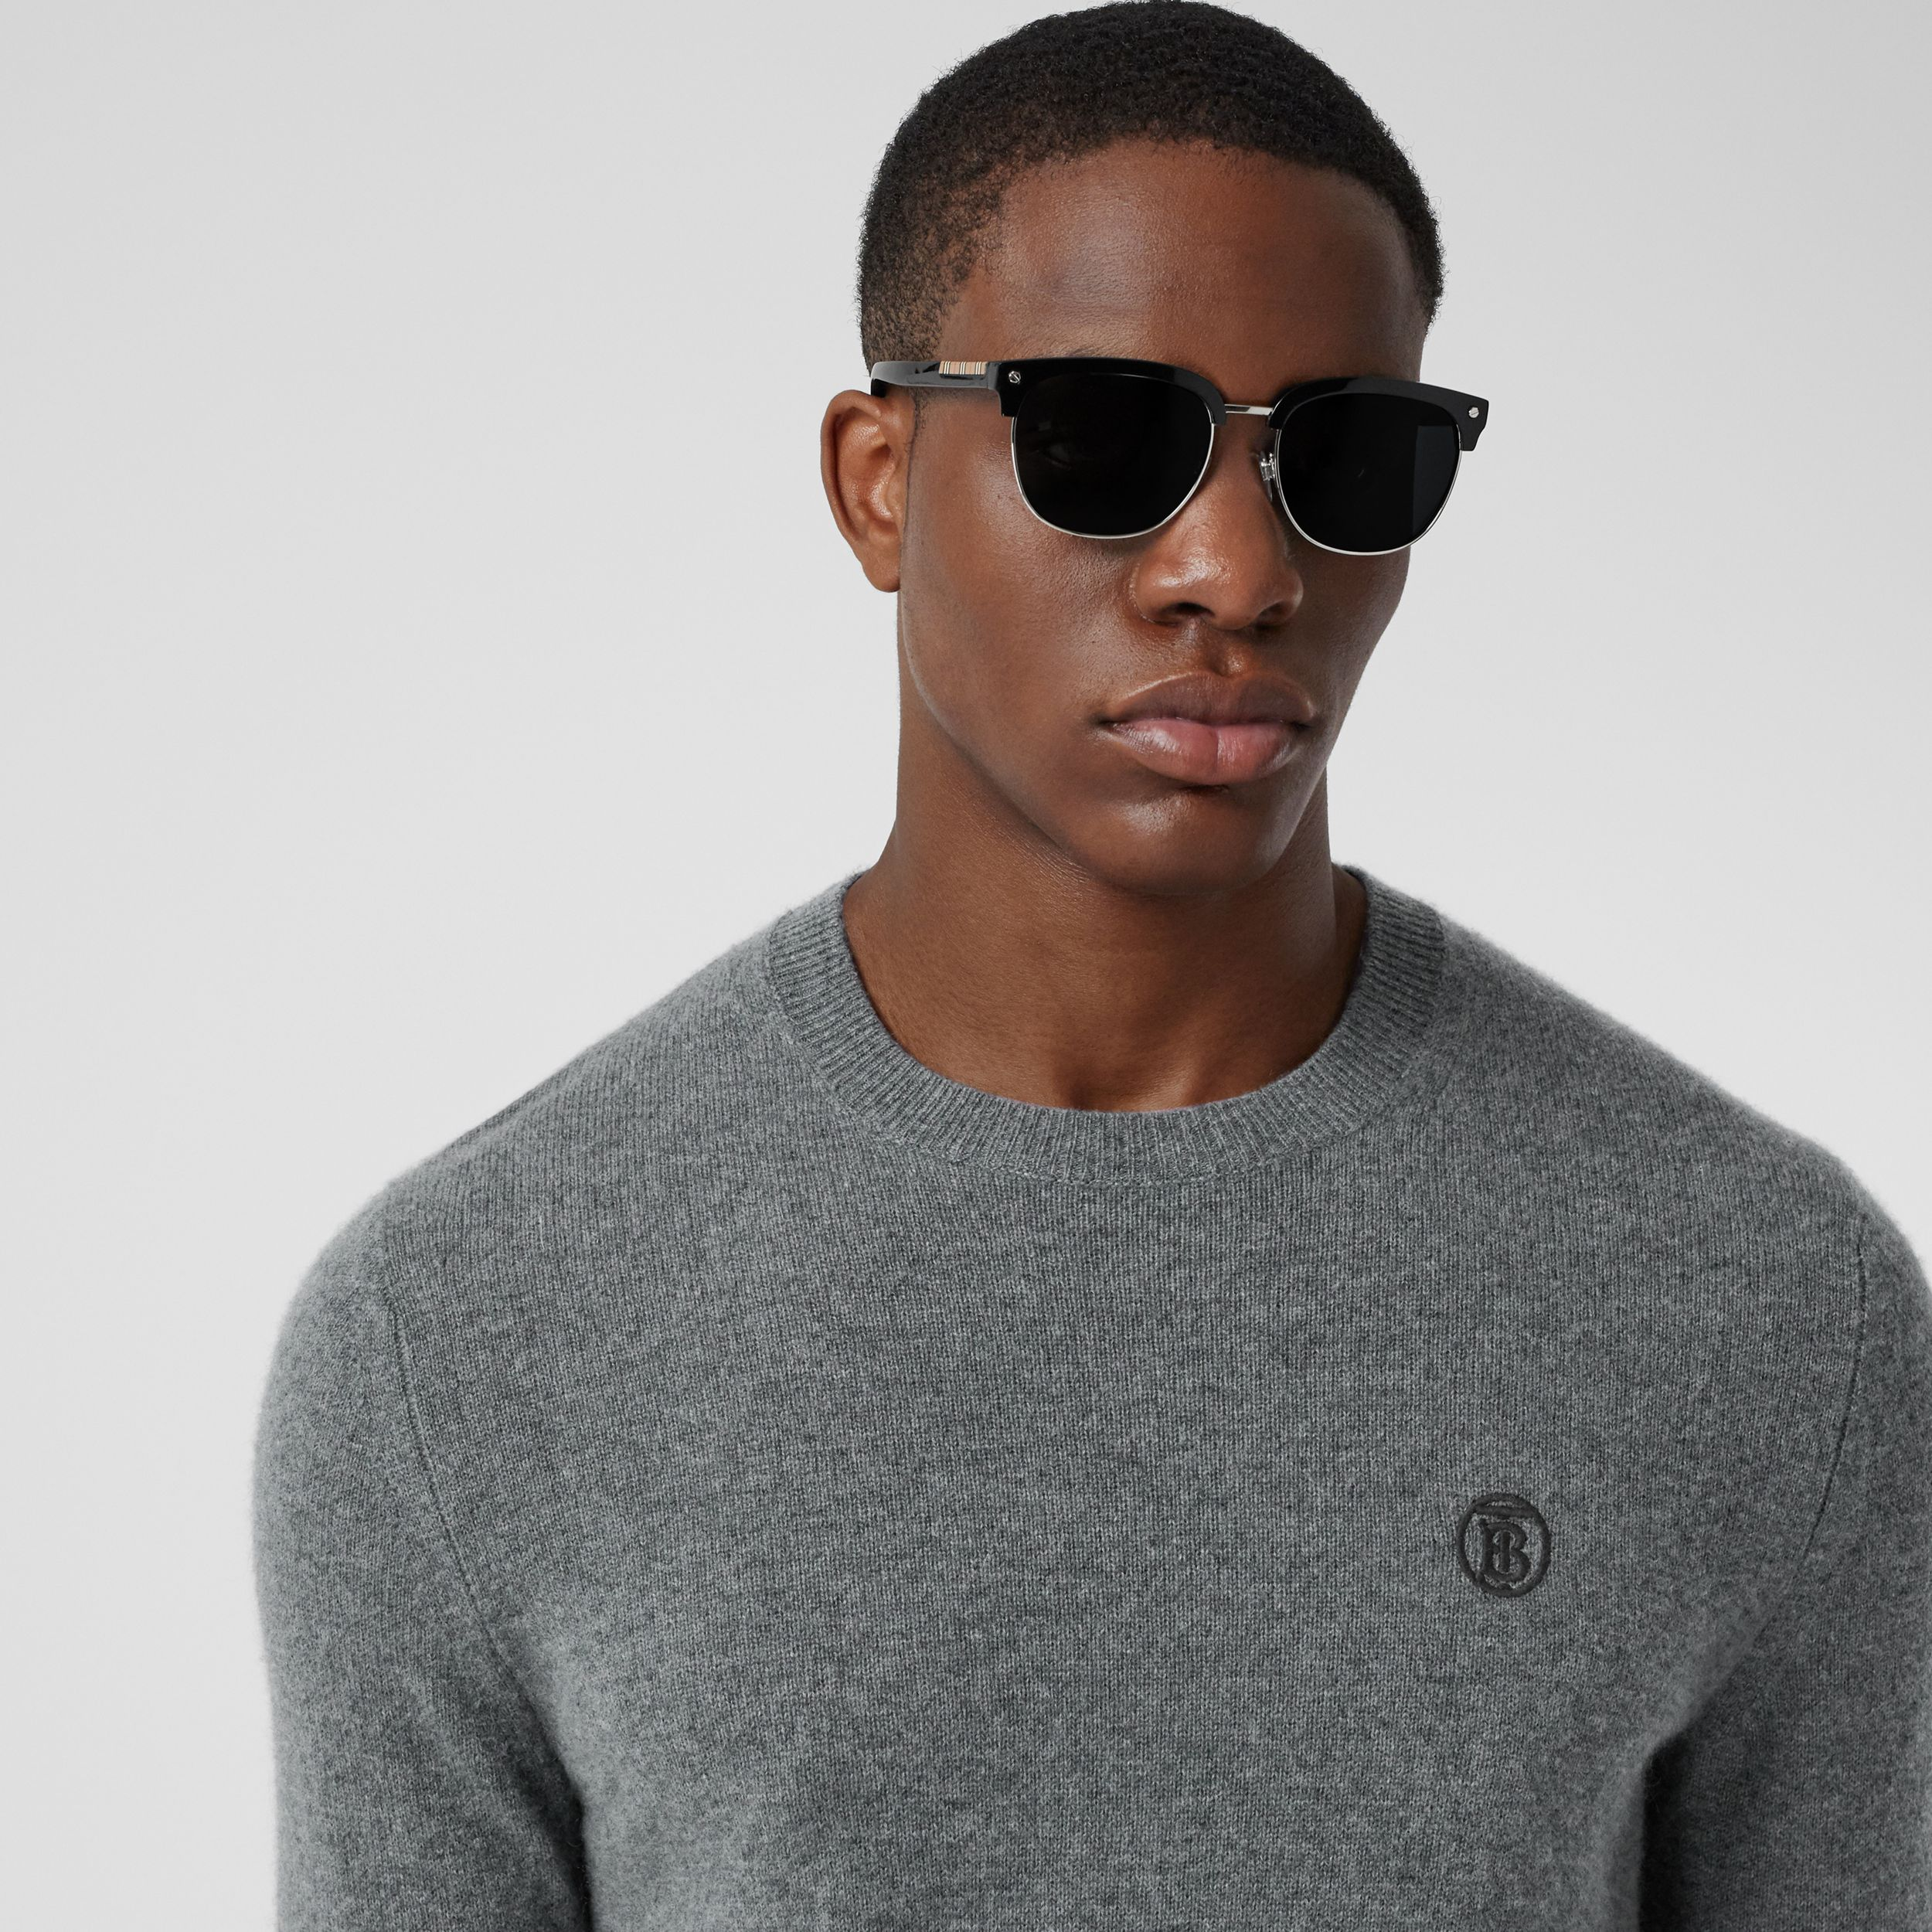 Monogram Motif Cashmere Sweater in Mid Grey Melange - Men | Burberry - 2